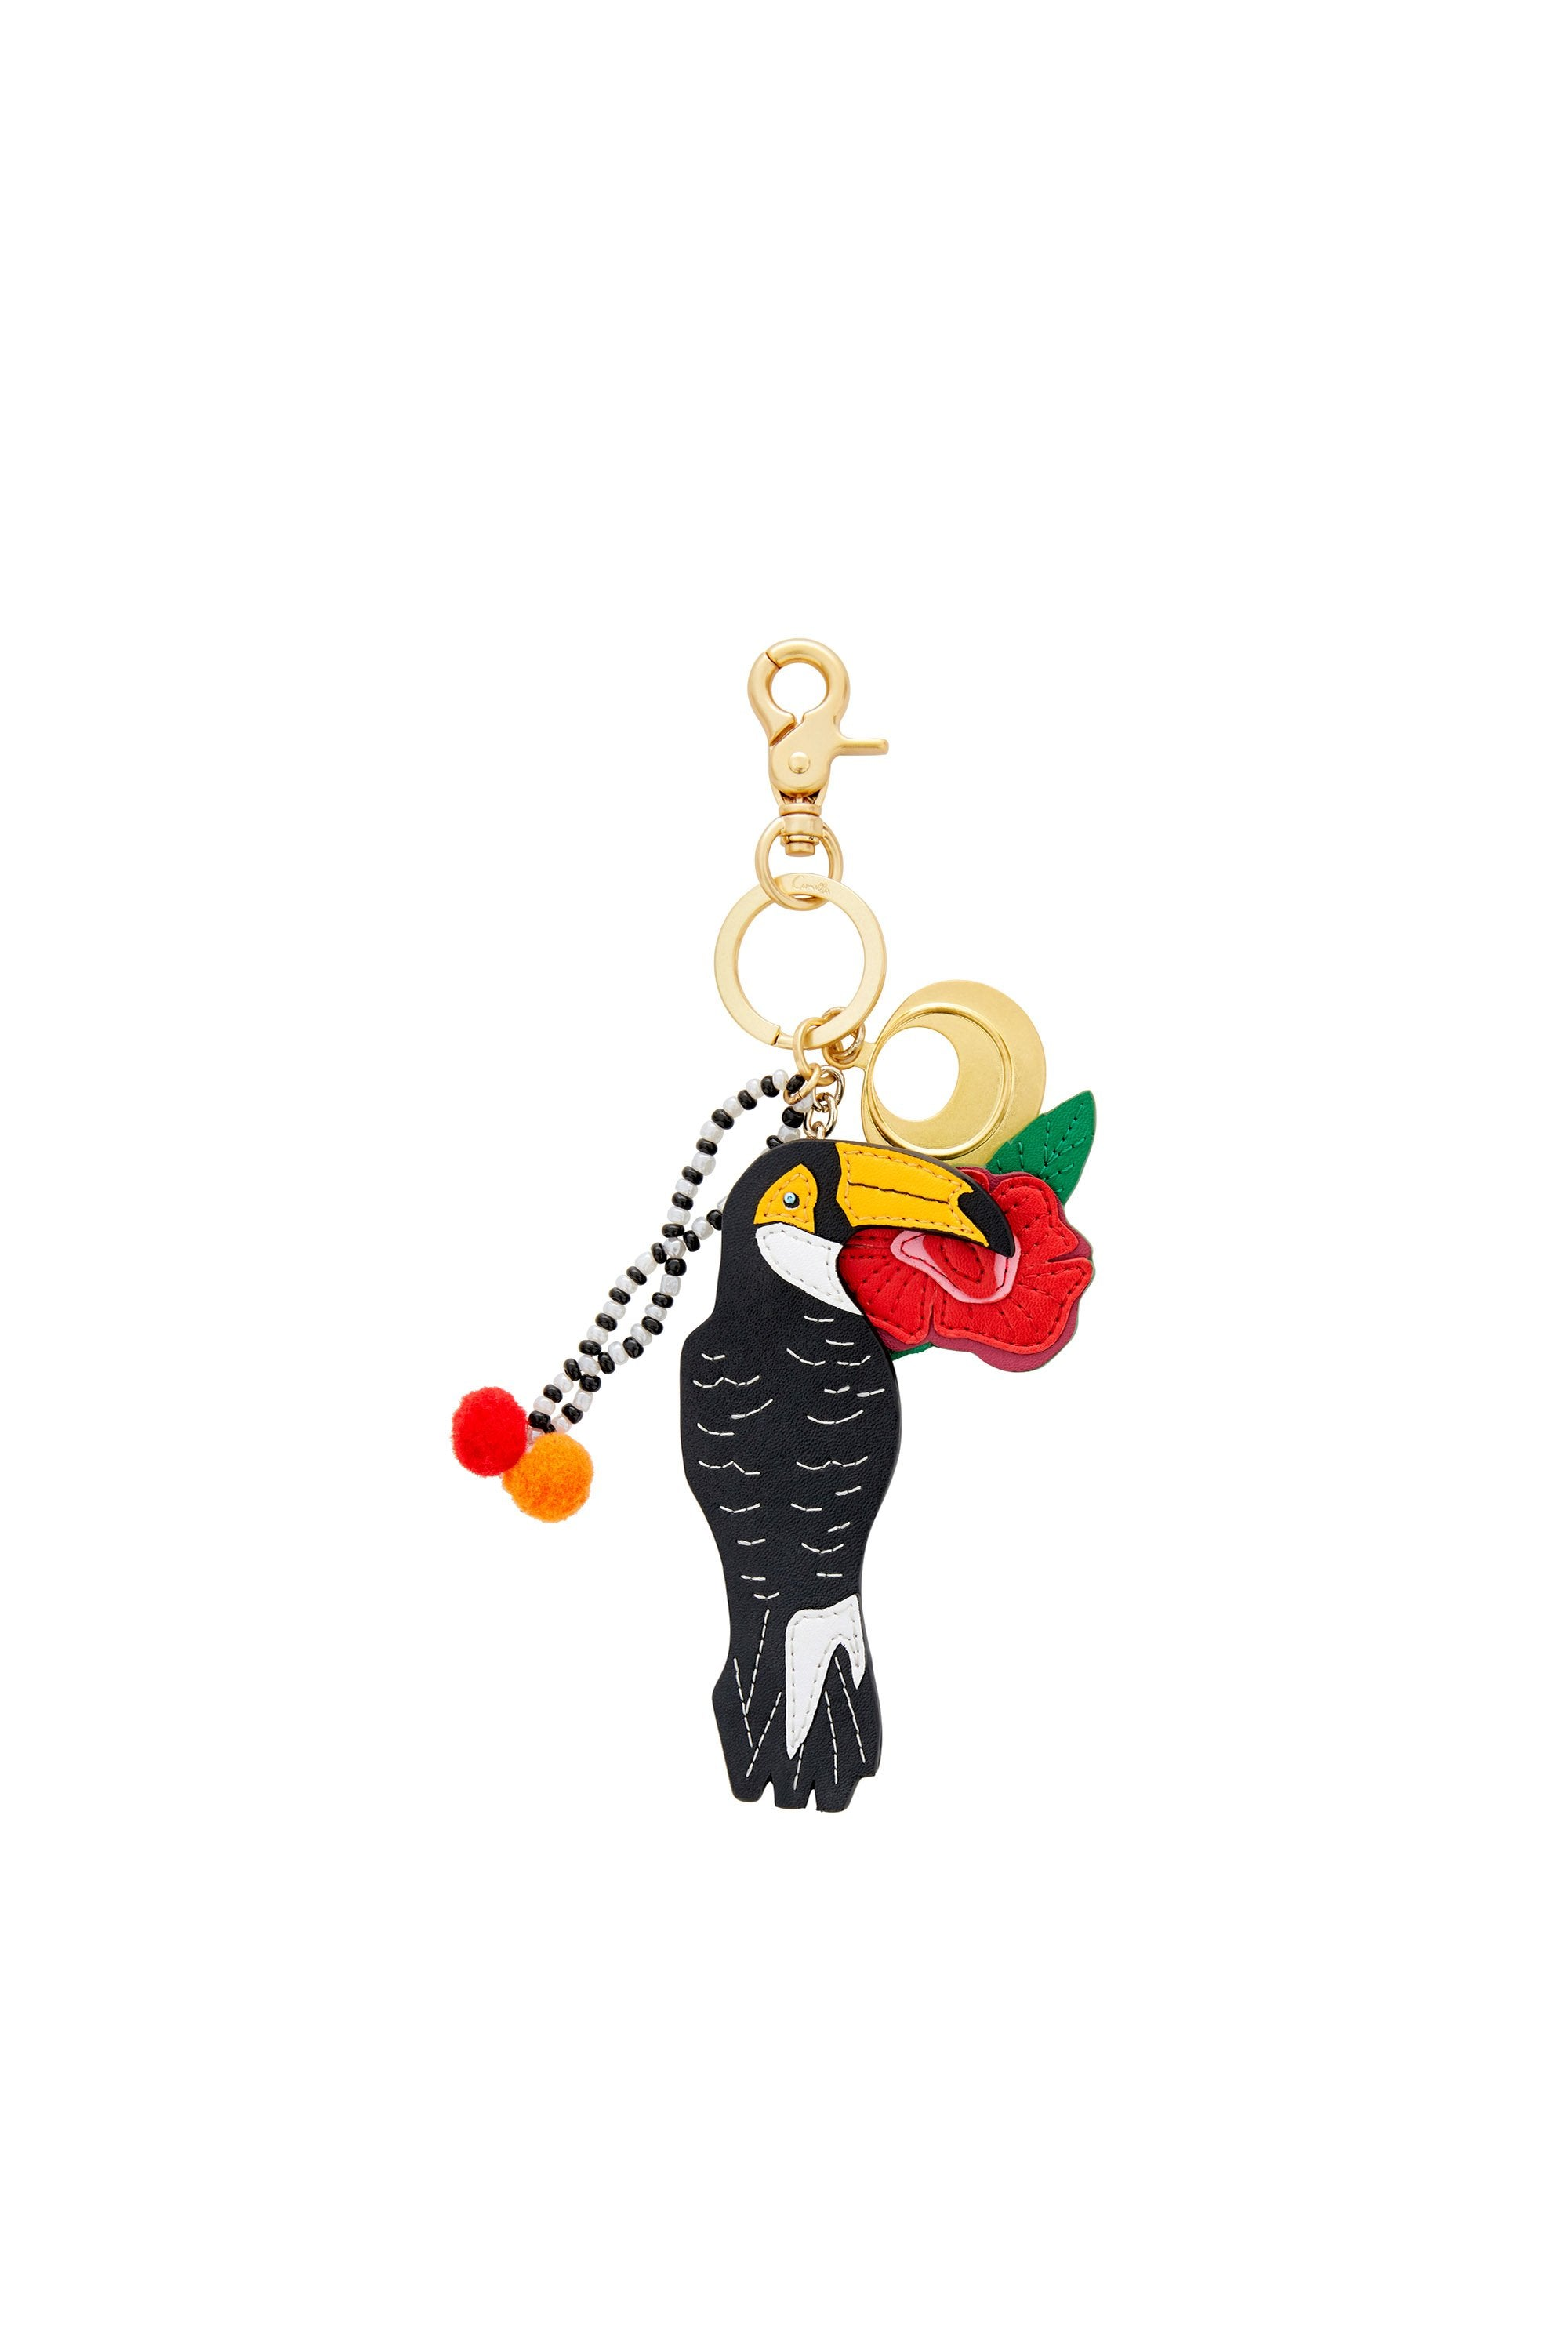 CALL ME CARMEN APPLIQUE LEATHER KEYRING